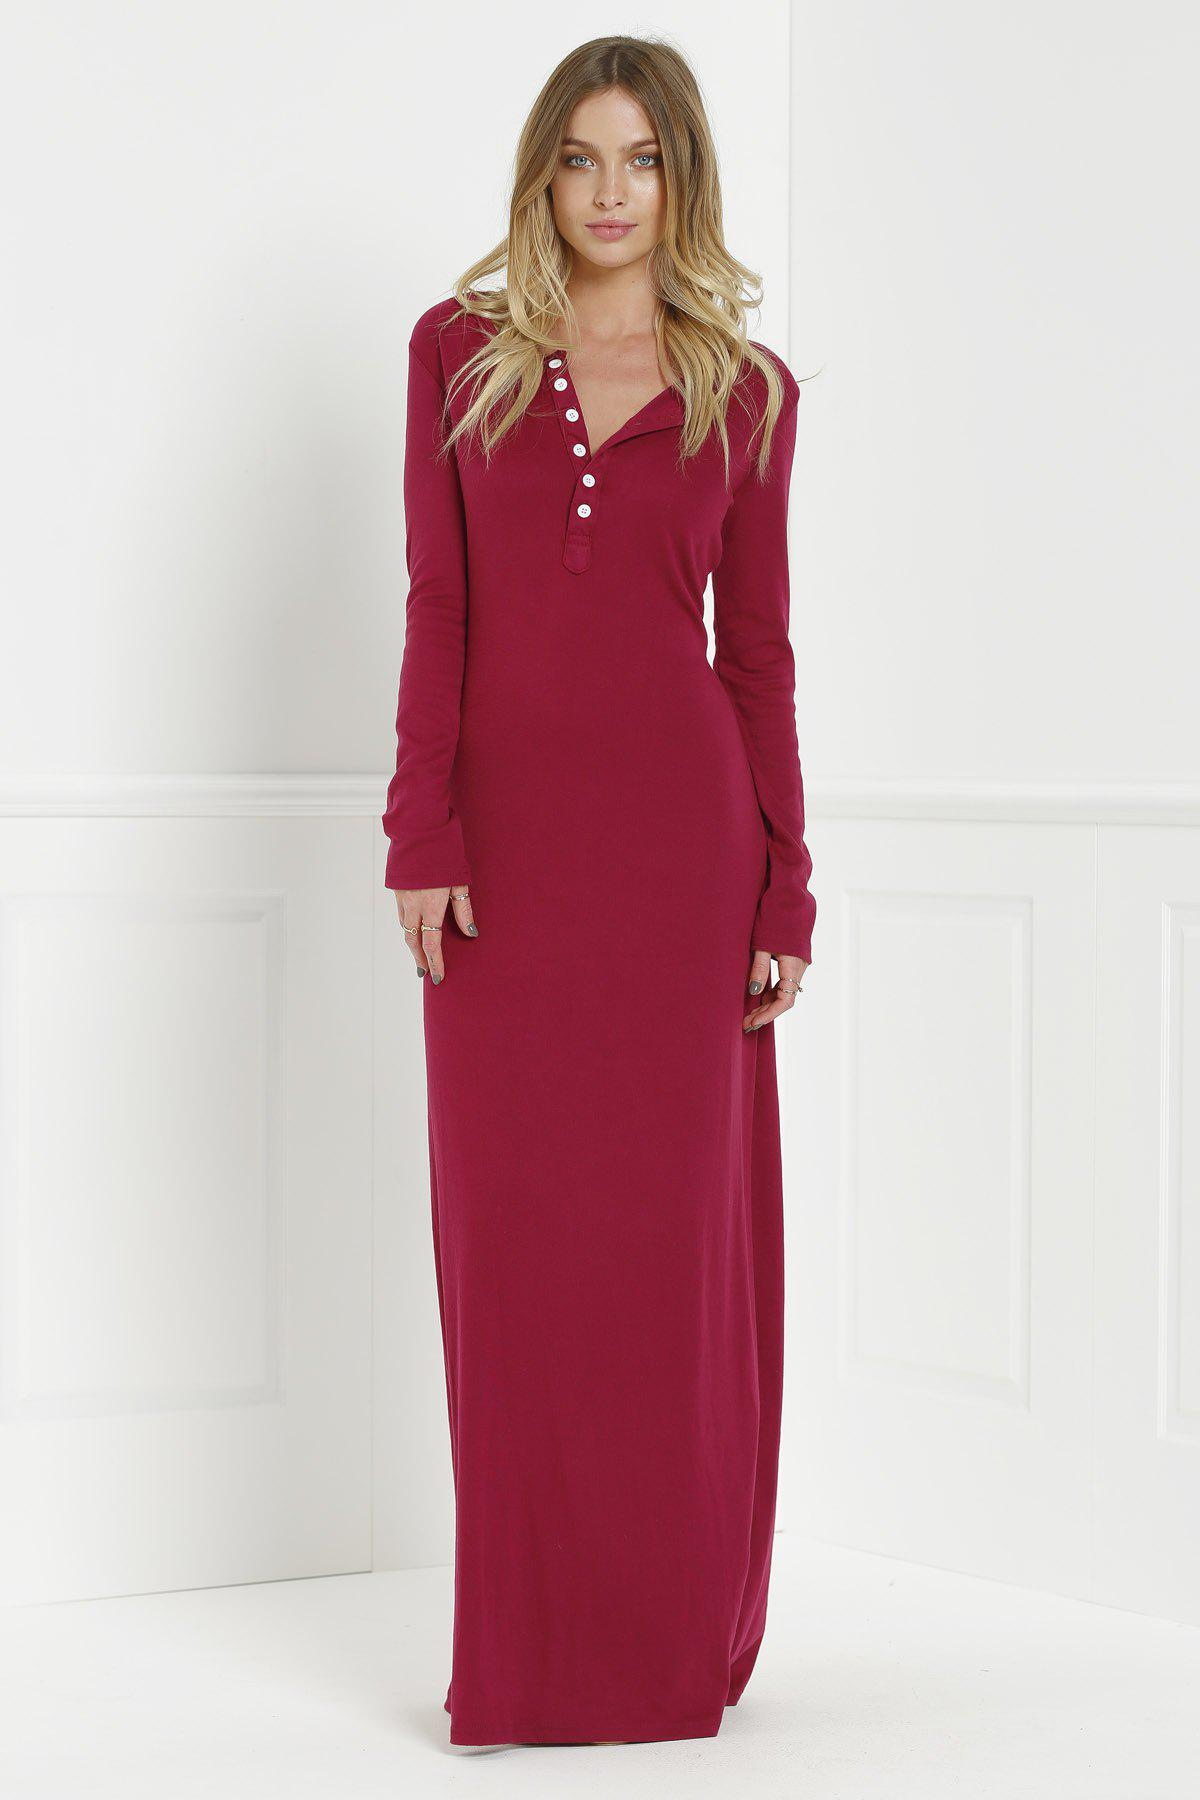 El Topo Dress - WINE RED L